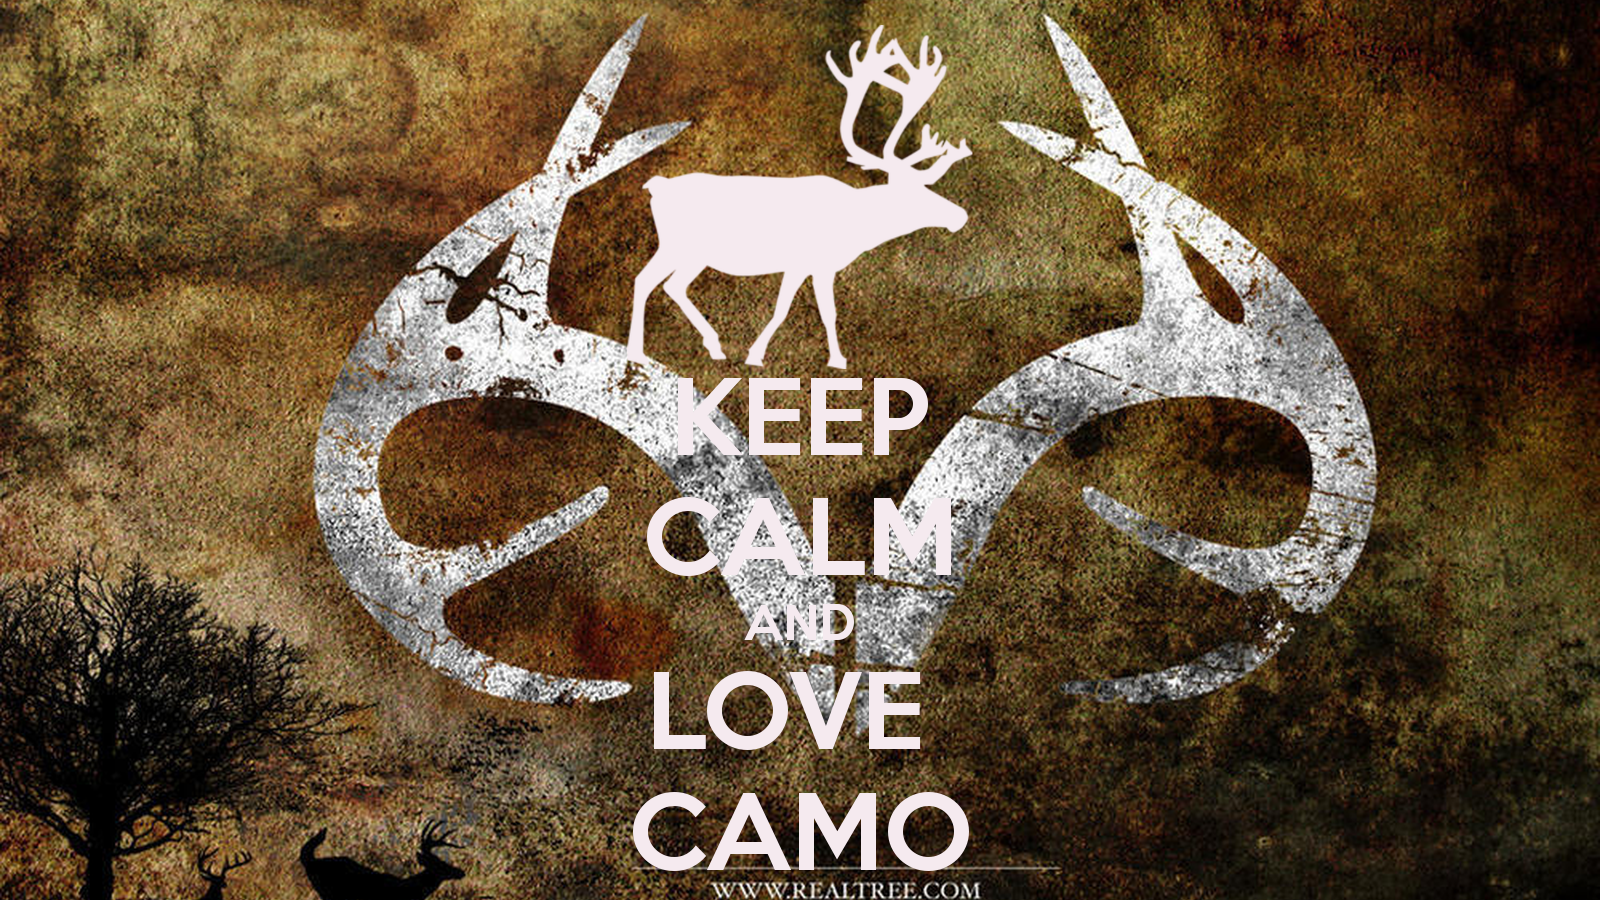 Browning Love Camo Wallpaper Camo love   viewing gallery 1600x900